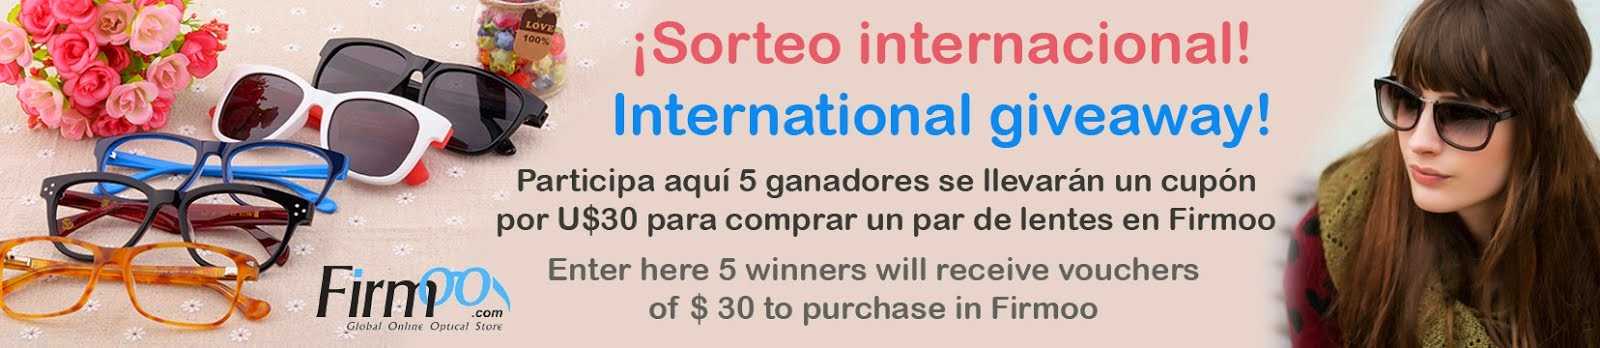 sorteo actual / currently giveaway